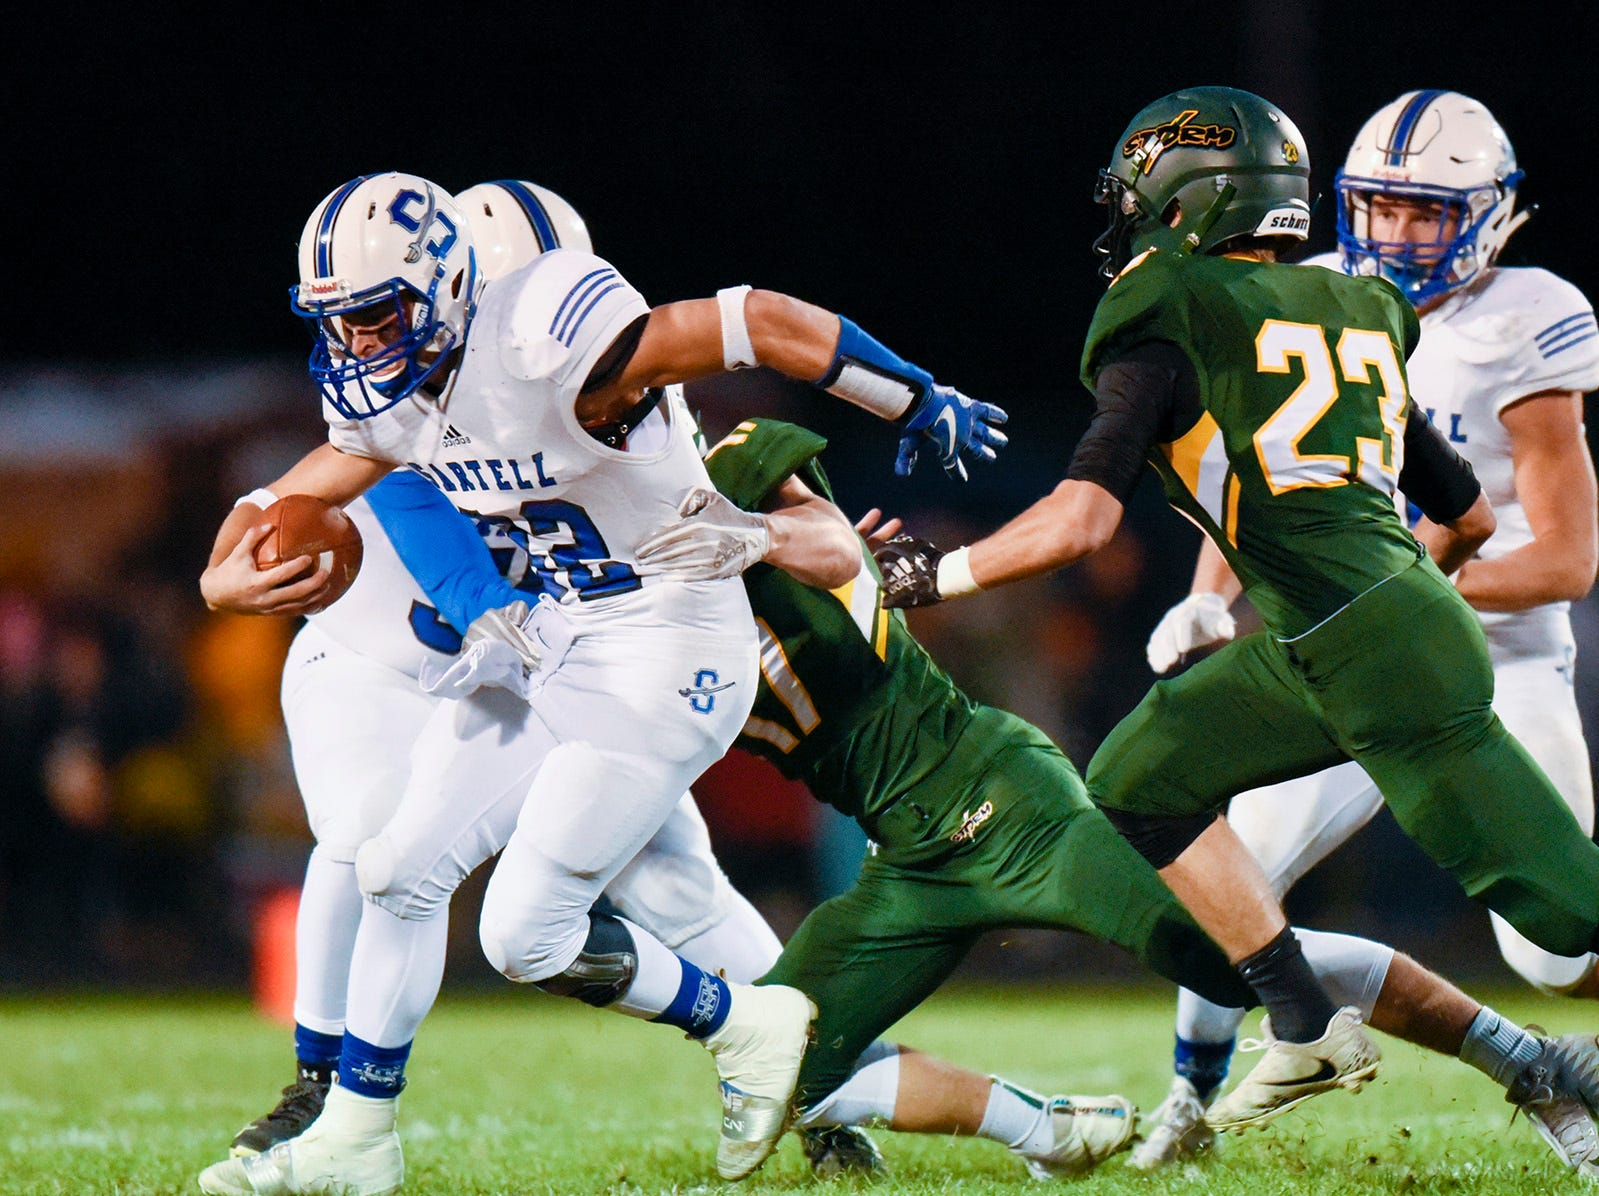 Sartell quarterback Ryan Giguere tries to break a tackle against Sauk Rapids during the first half Friday, Sept. 28, in Sauk Rapids.